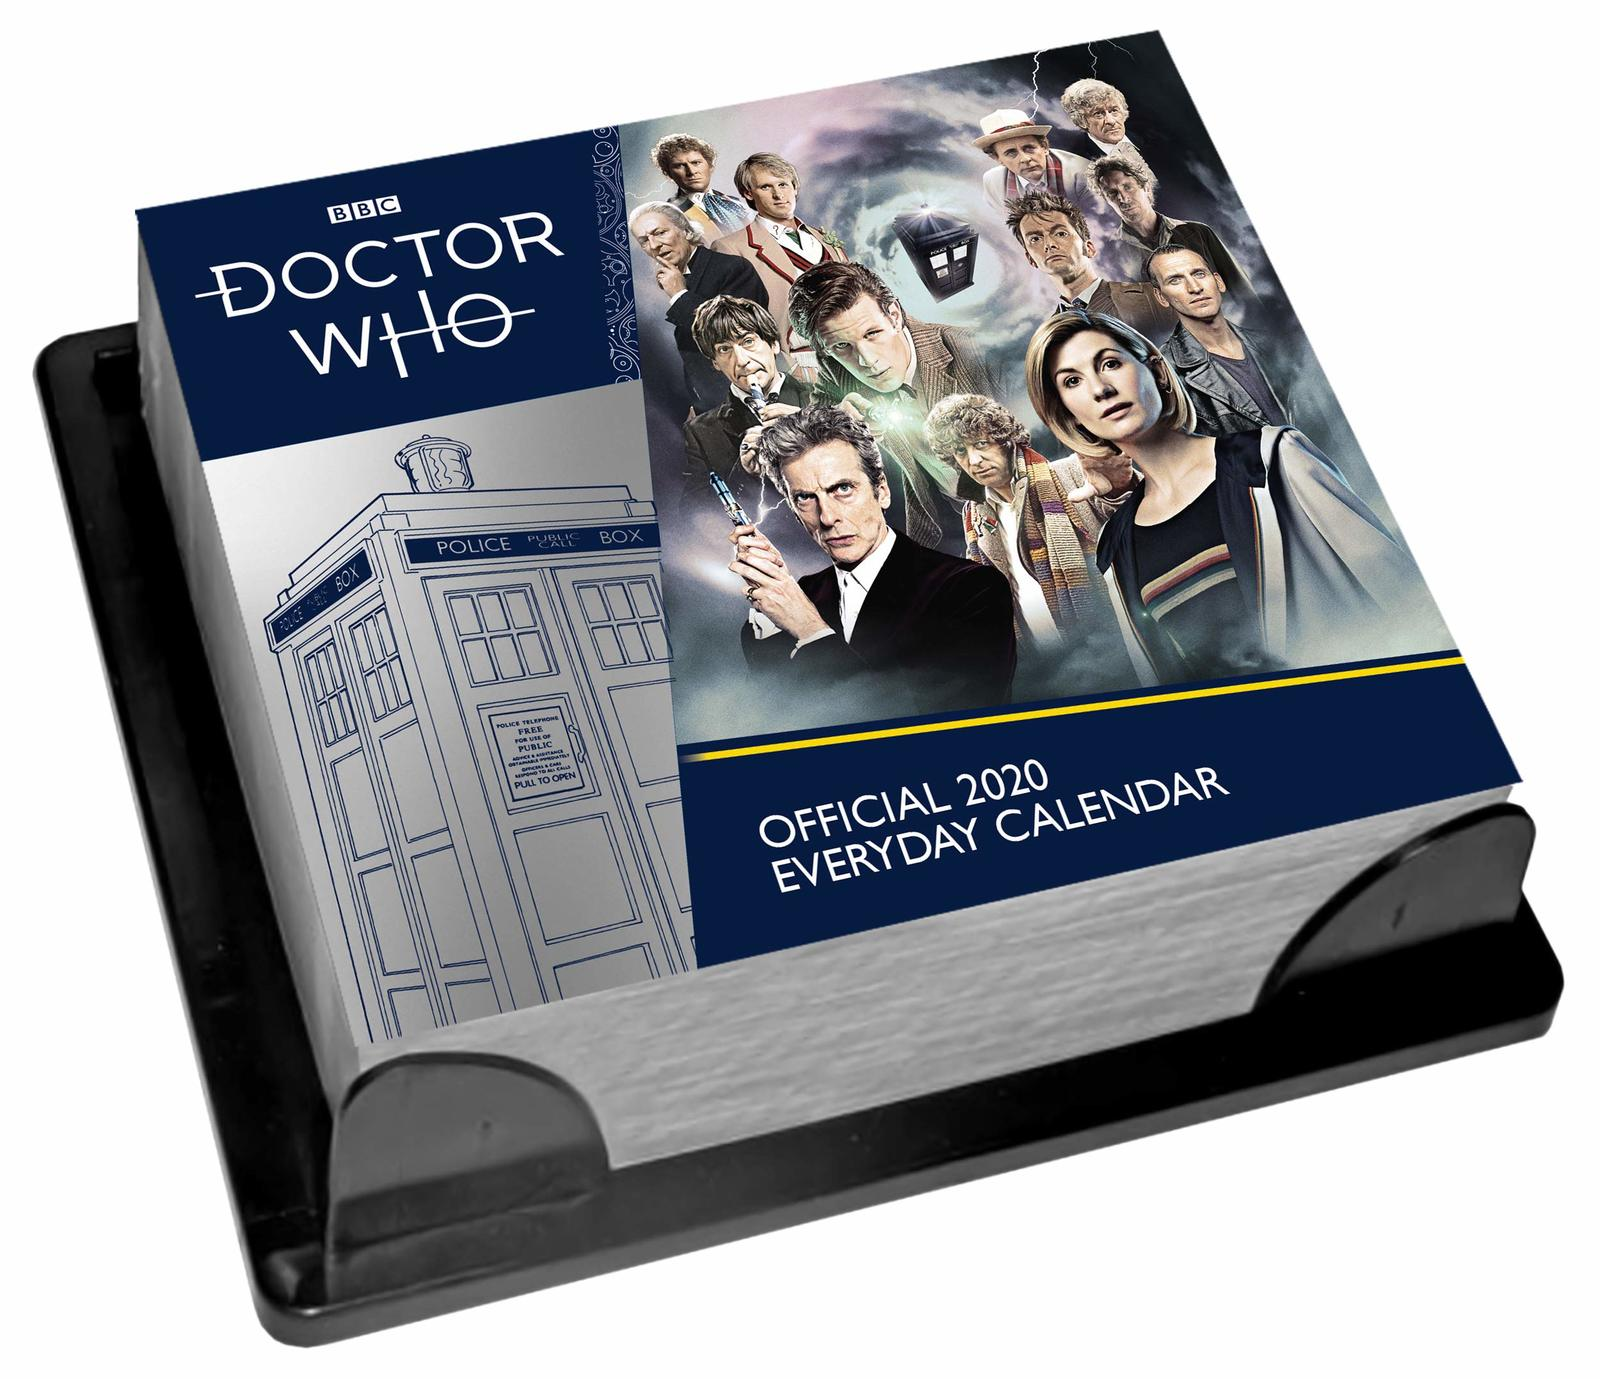 Official Doctor Who 2020 Boxed Calendar image